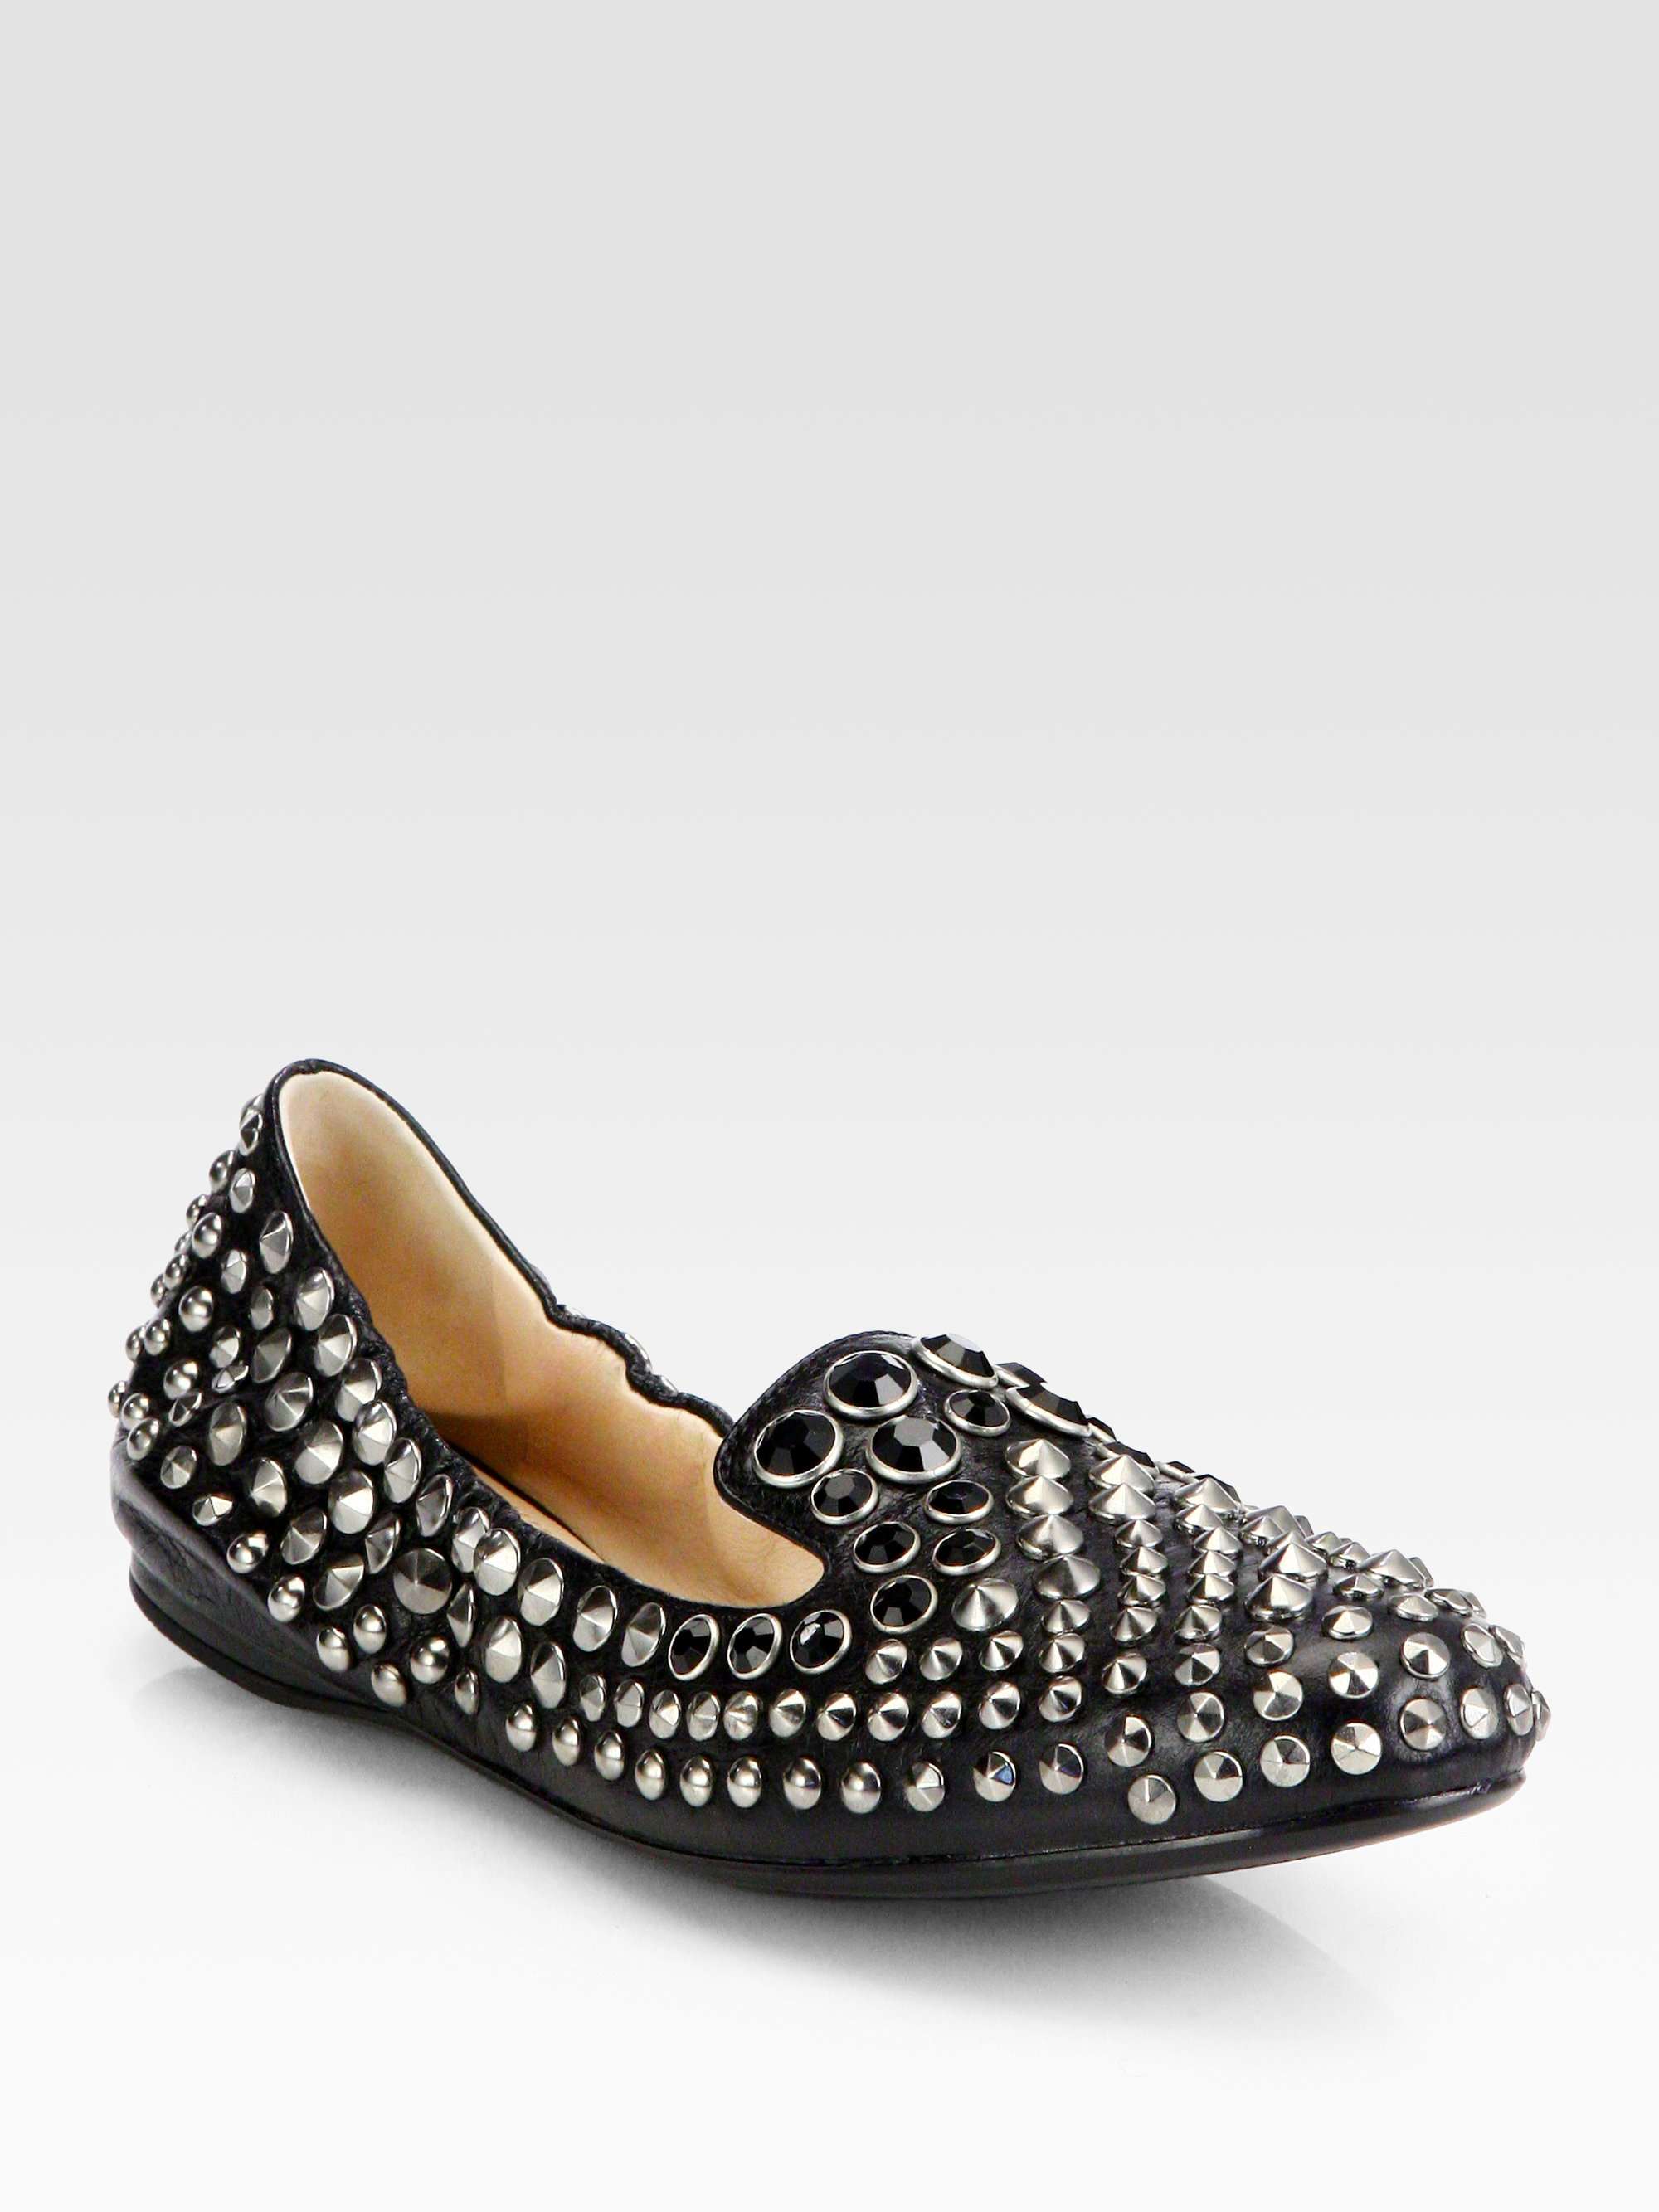 094d937a943c Lyst - Prada Studded Leather Smoking Slippers in Black